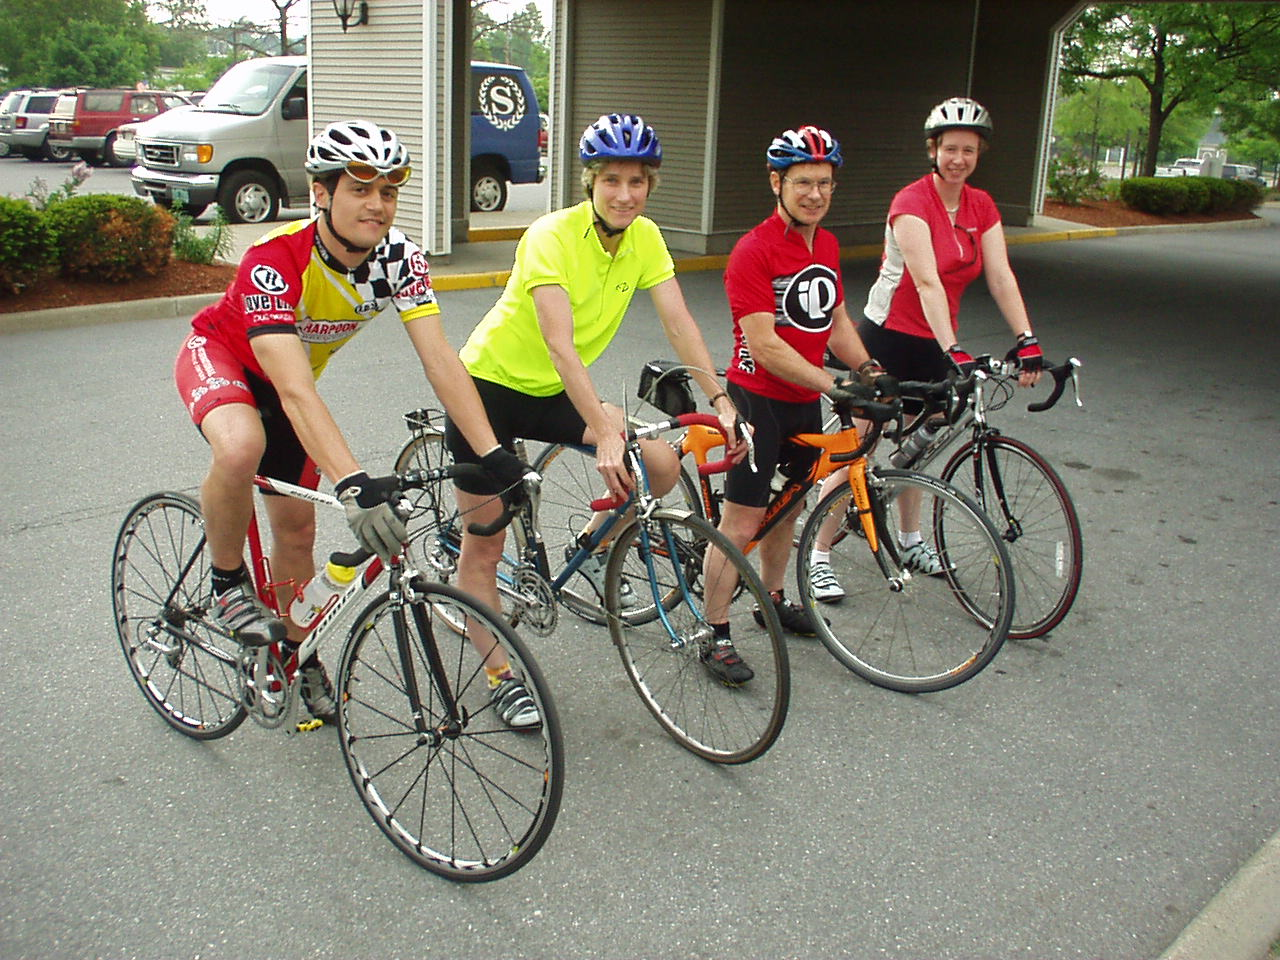 2005 Annual Meeting Bike Ride